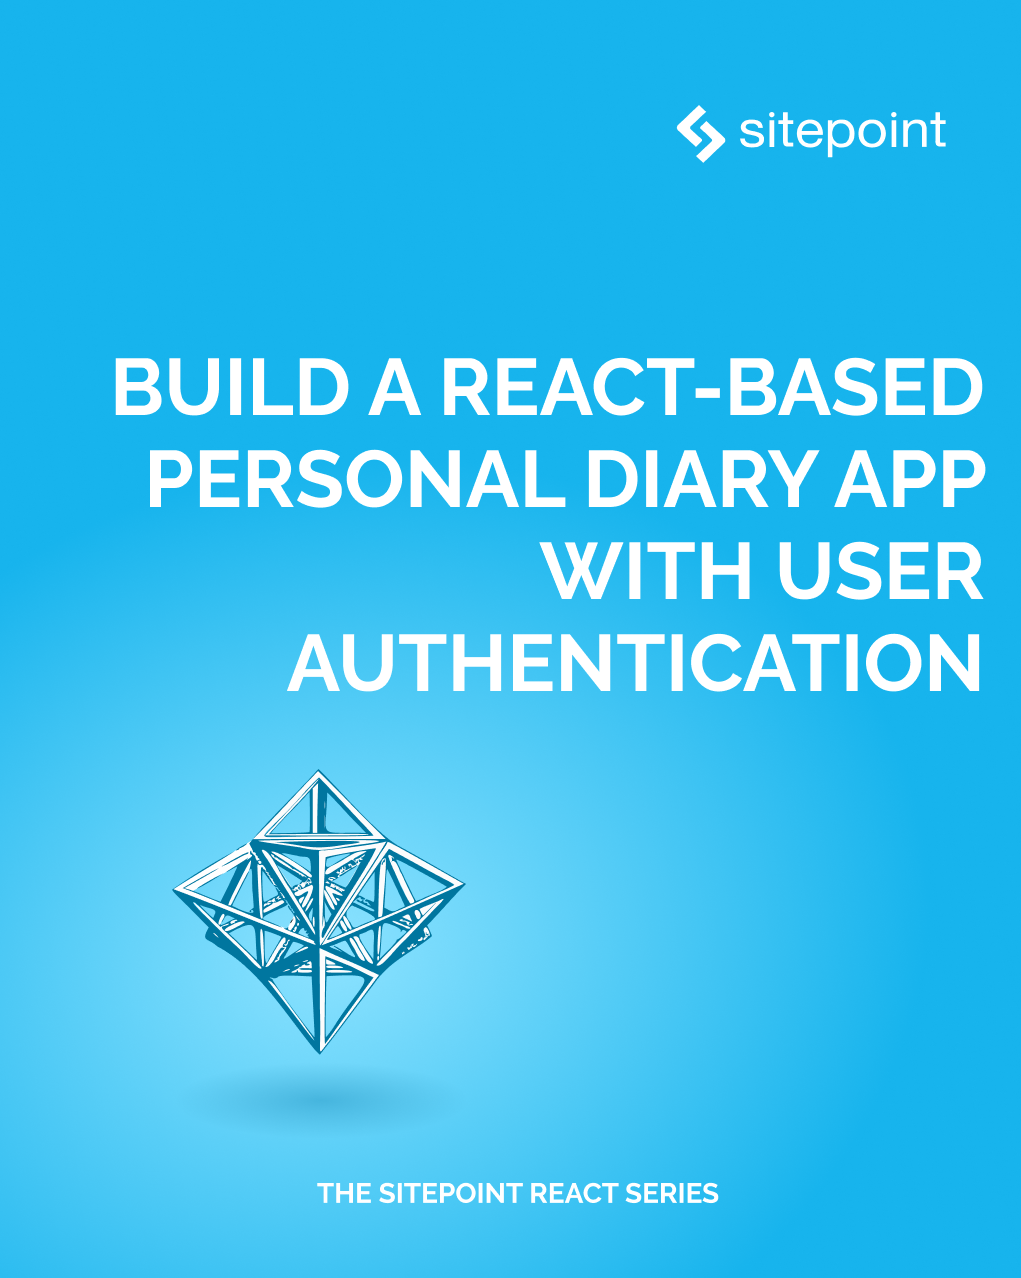 Build a React-based Personal Diary App with User Authentication